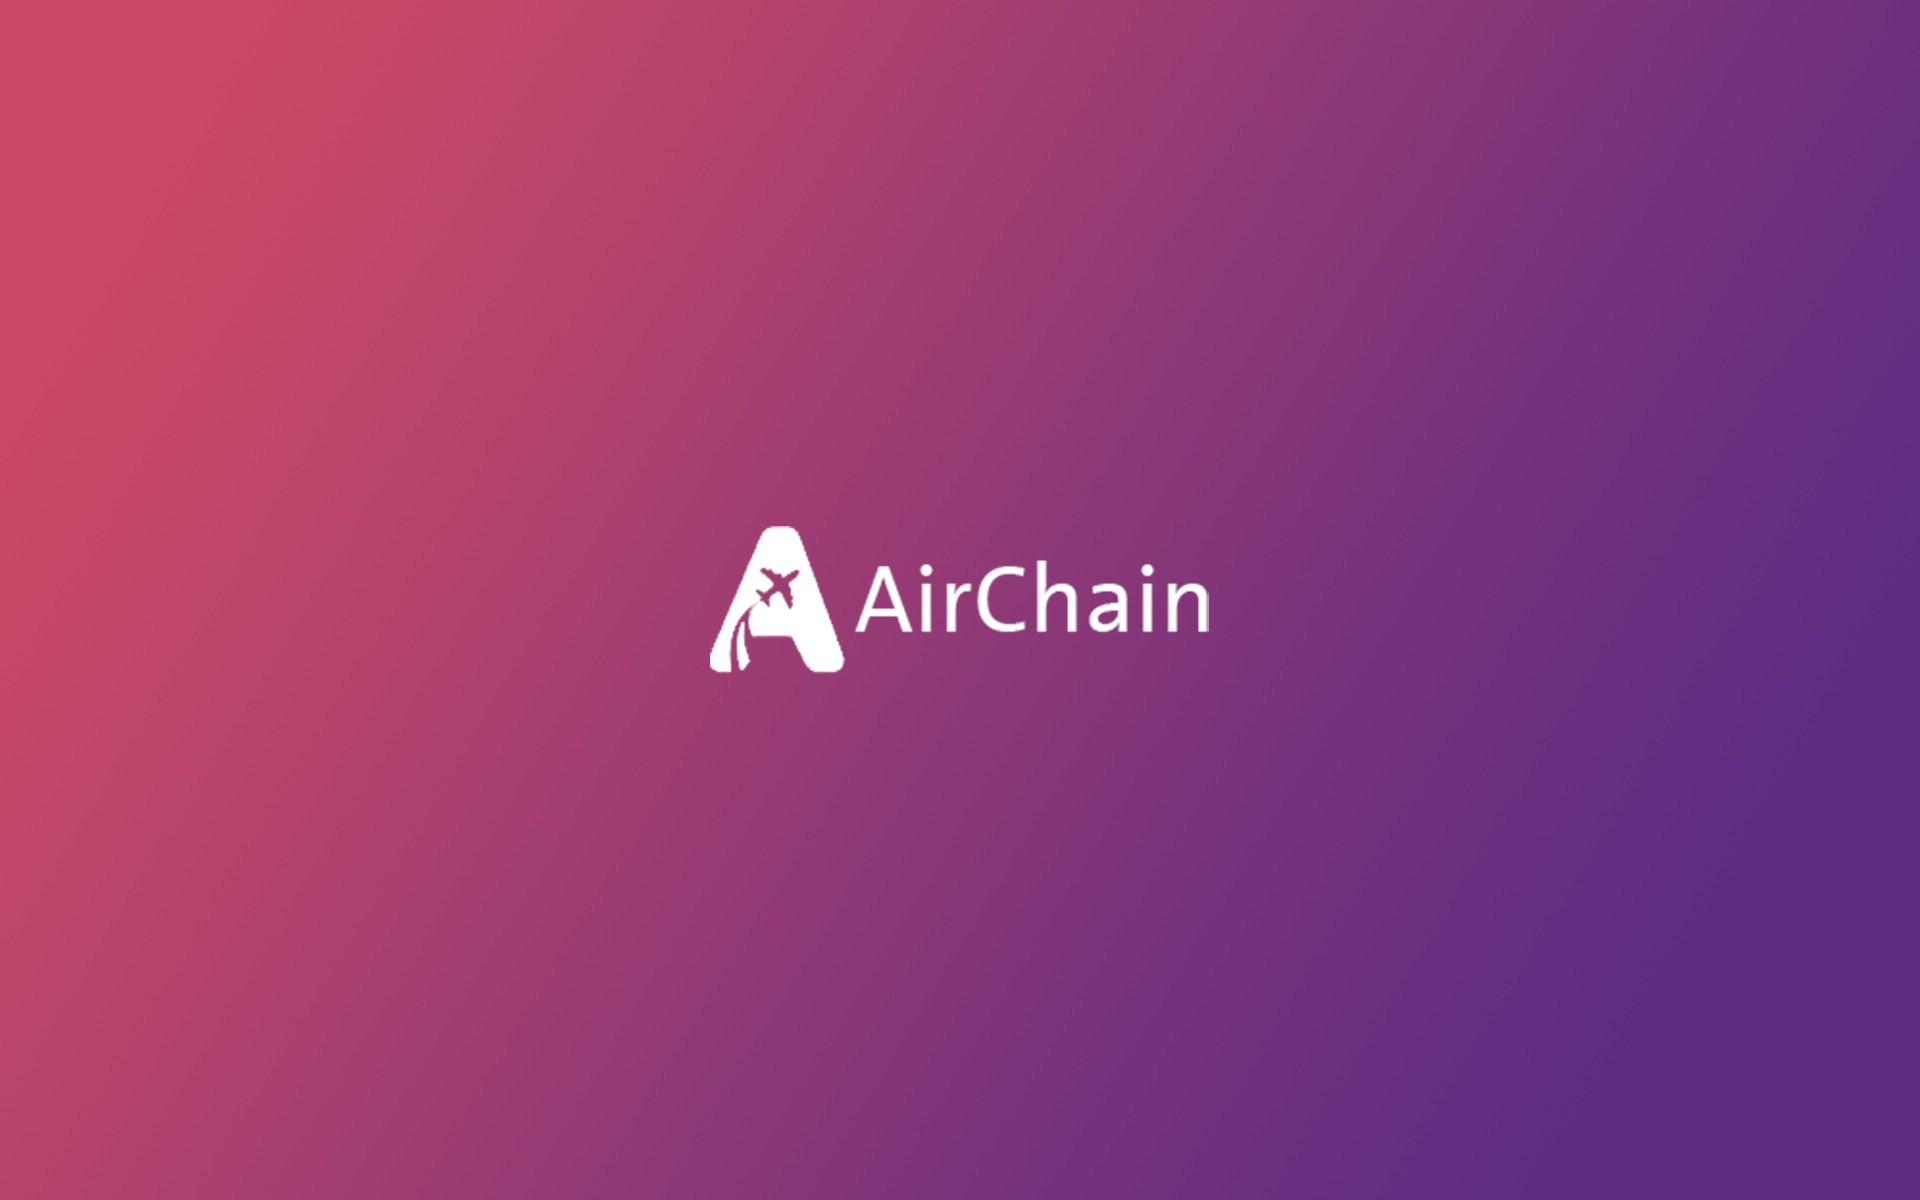 Airchain Network Introduces Mobile Application to Make the Air Freight Sector Transparent, Safe and Flexible like Never Before